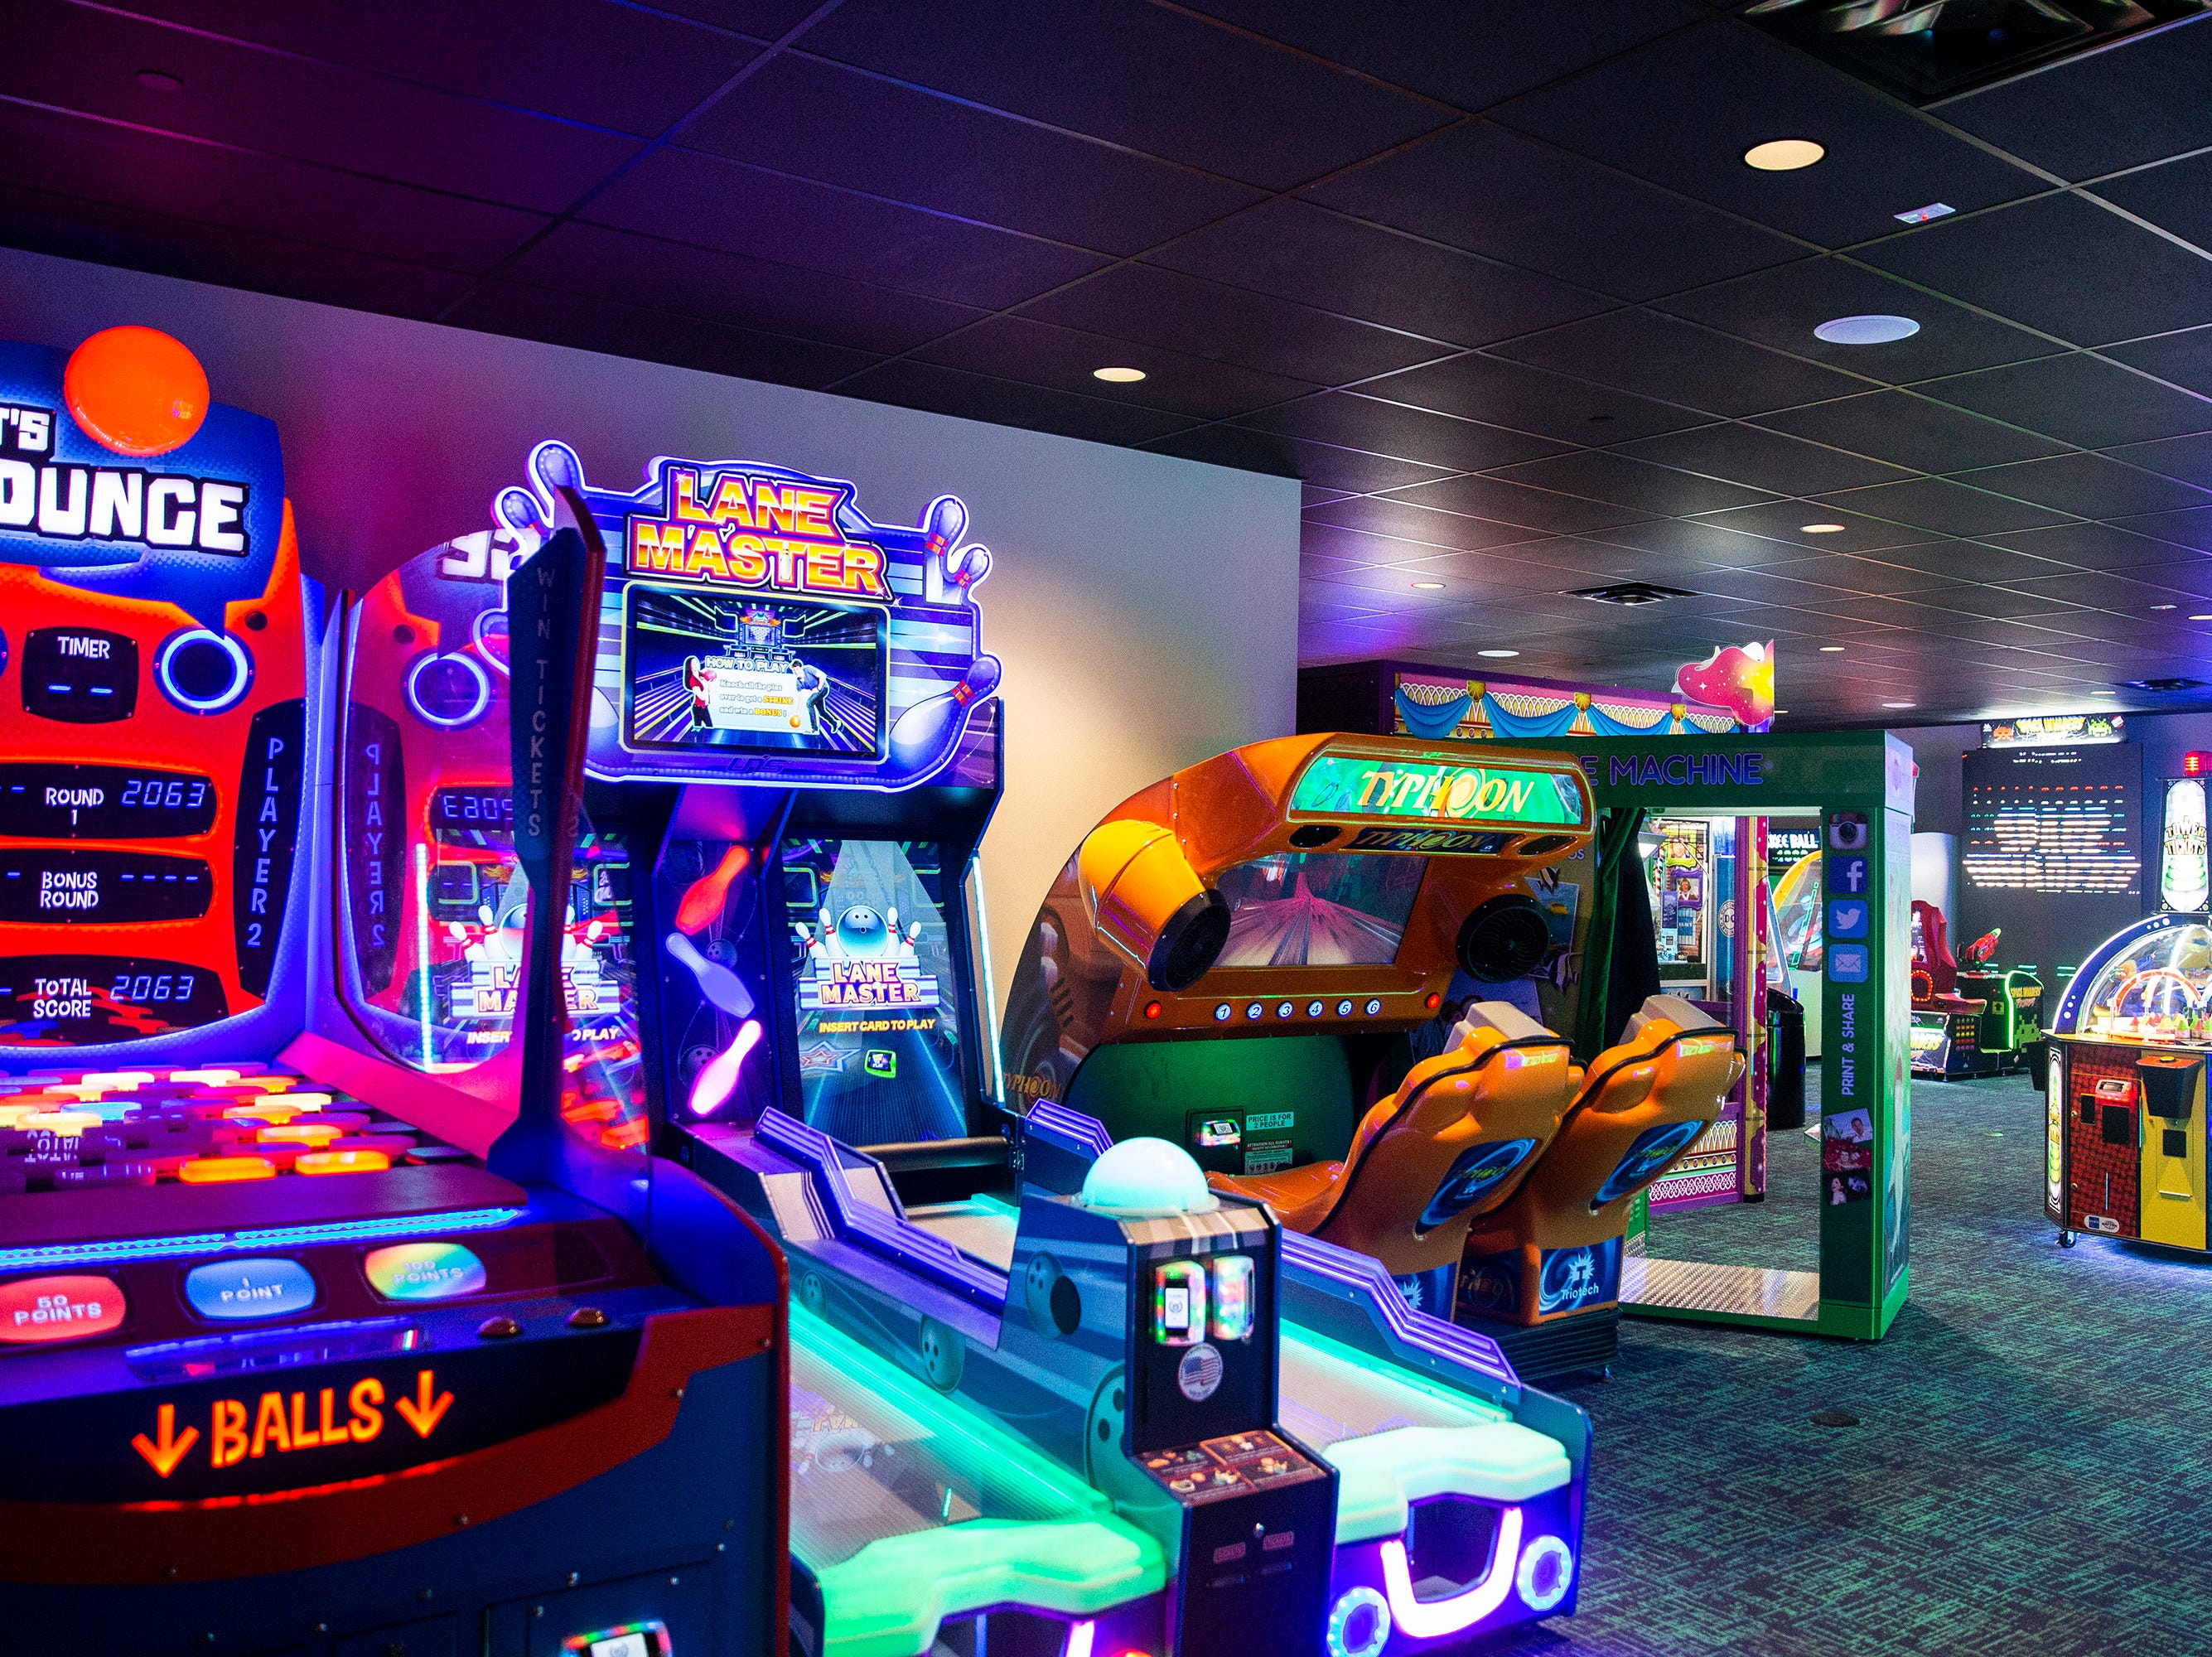 B & B Ankeny 12 & B-Roll Bowling also has an arcade and rentable game rooms, on Sunday, Dec. 9, 2018, in Ankeny. This theater is one of the few to offer an arcade, bowling, full bar and theater in one place.